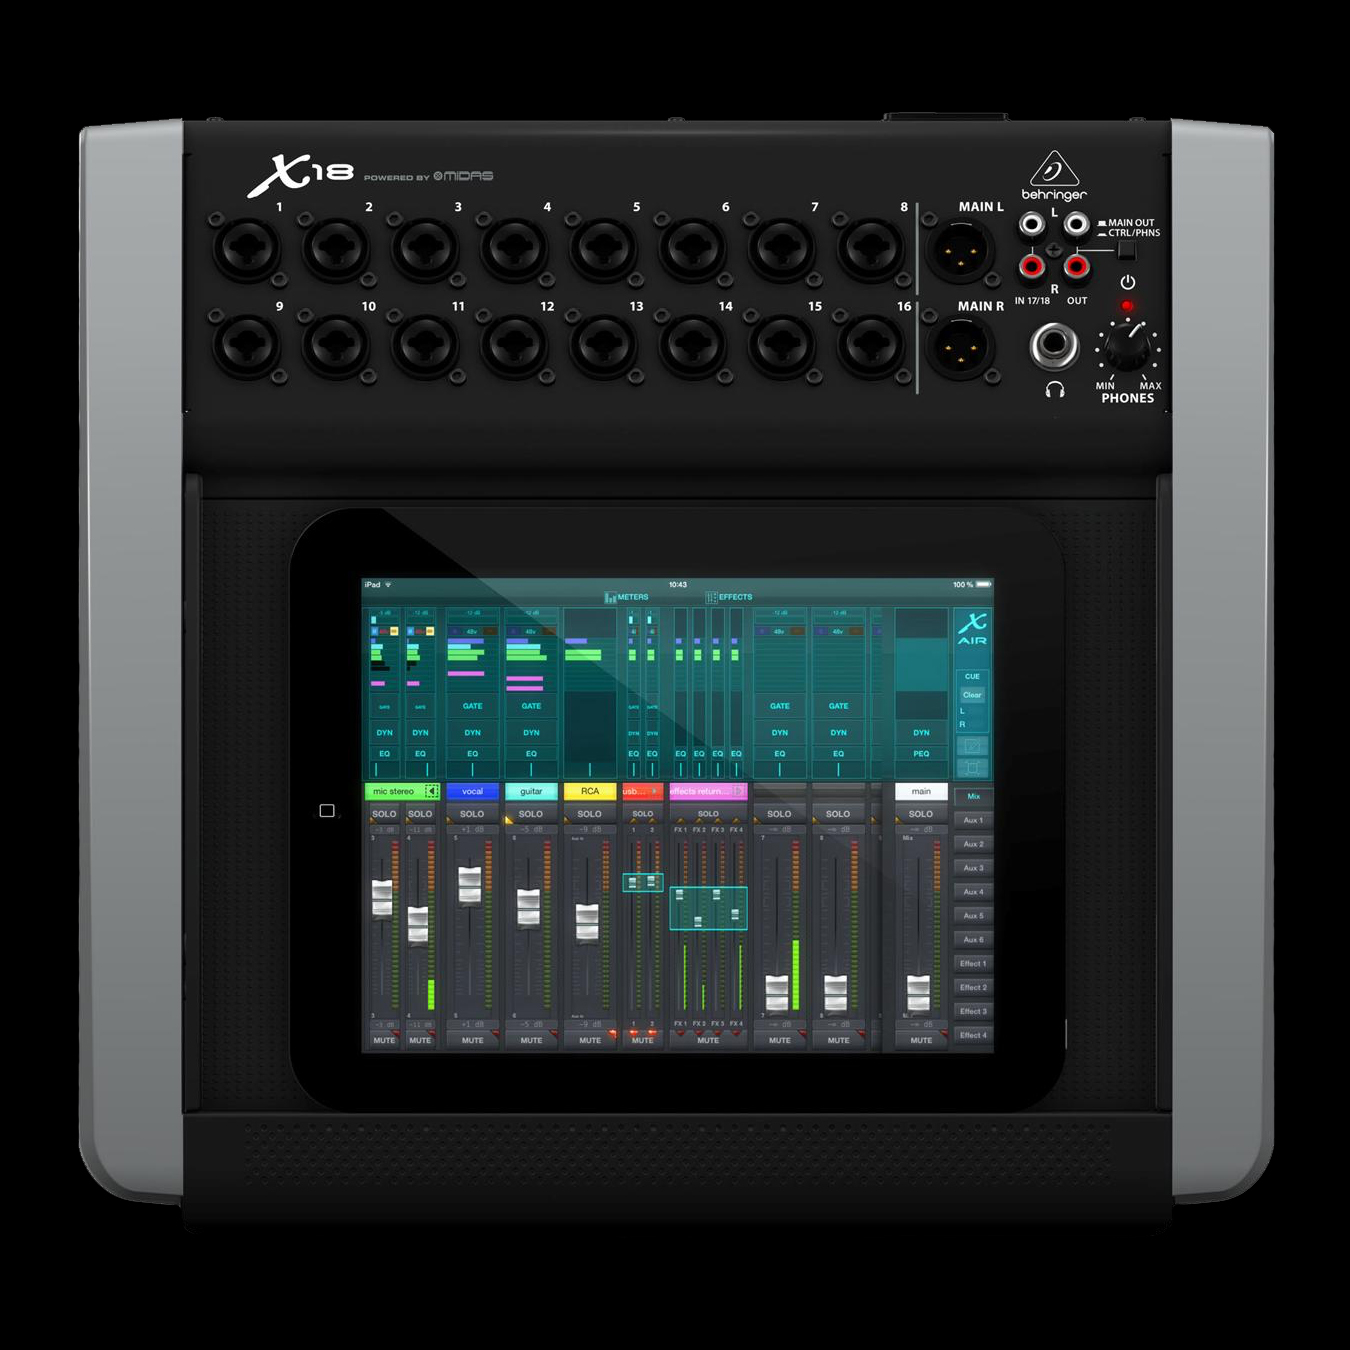 behringer x18 16 channel usb audio interface for ios. Black Bedroom Furniture Sets. Home Design Ideas